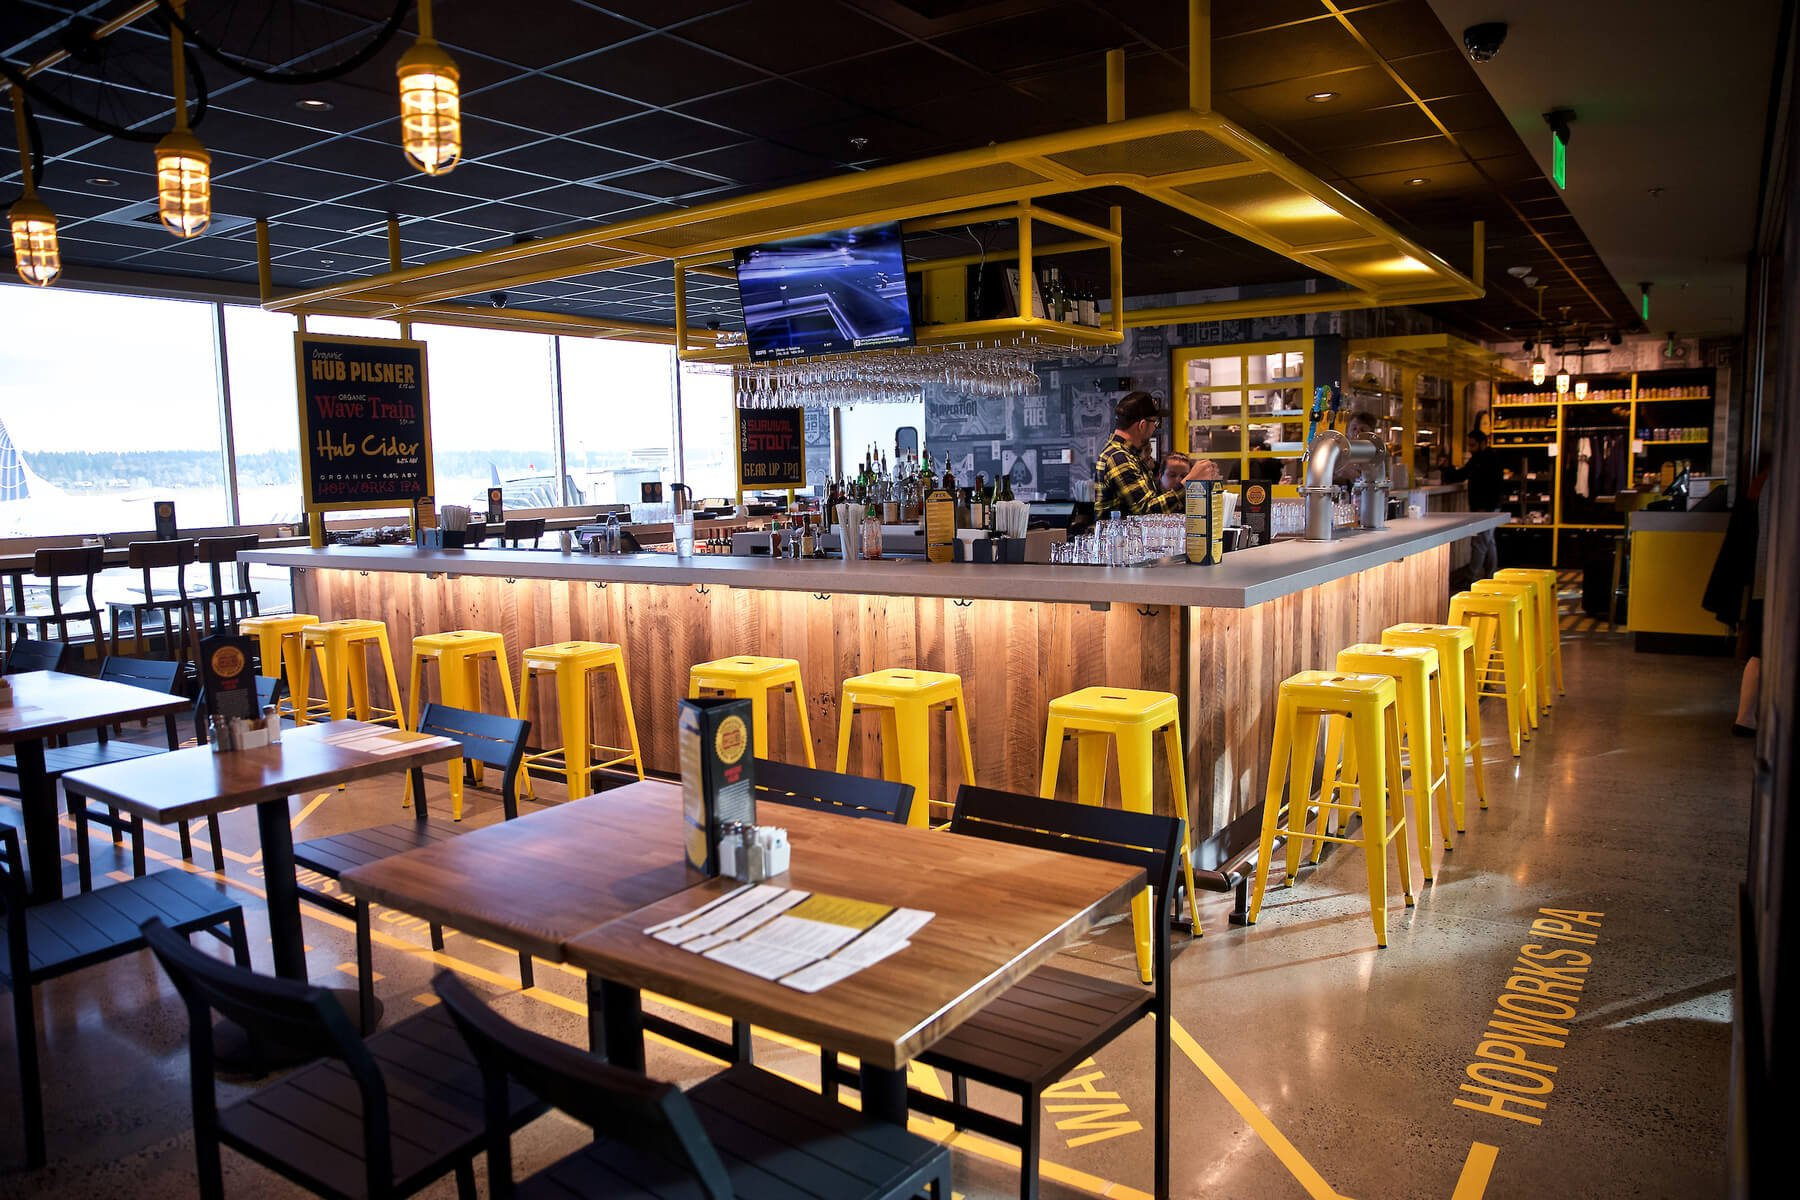 Inside the taproom at the Hopworks Urban Brewery PDX Airport location in Portland, Oregon